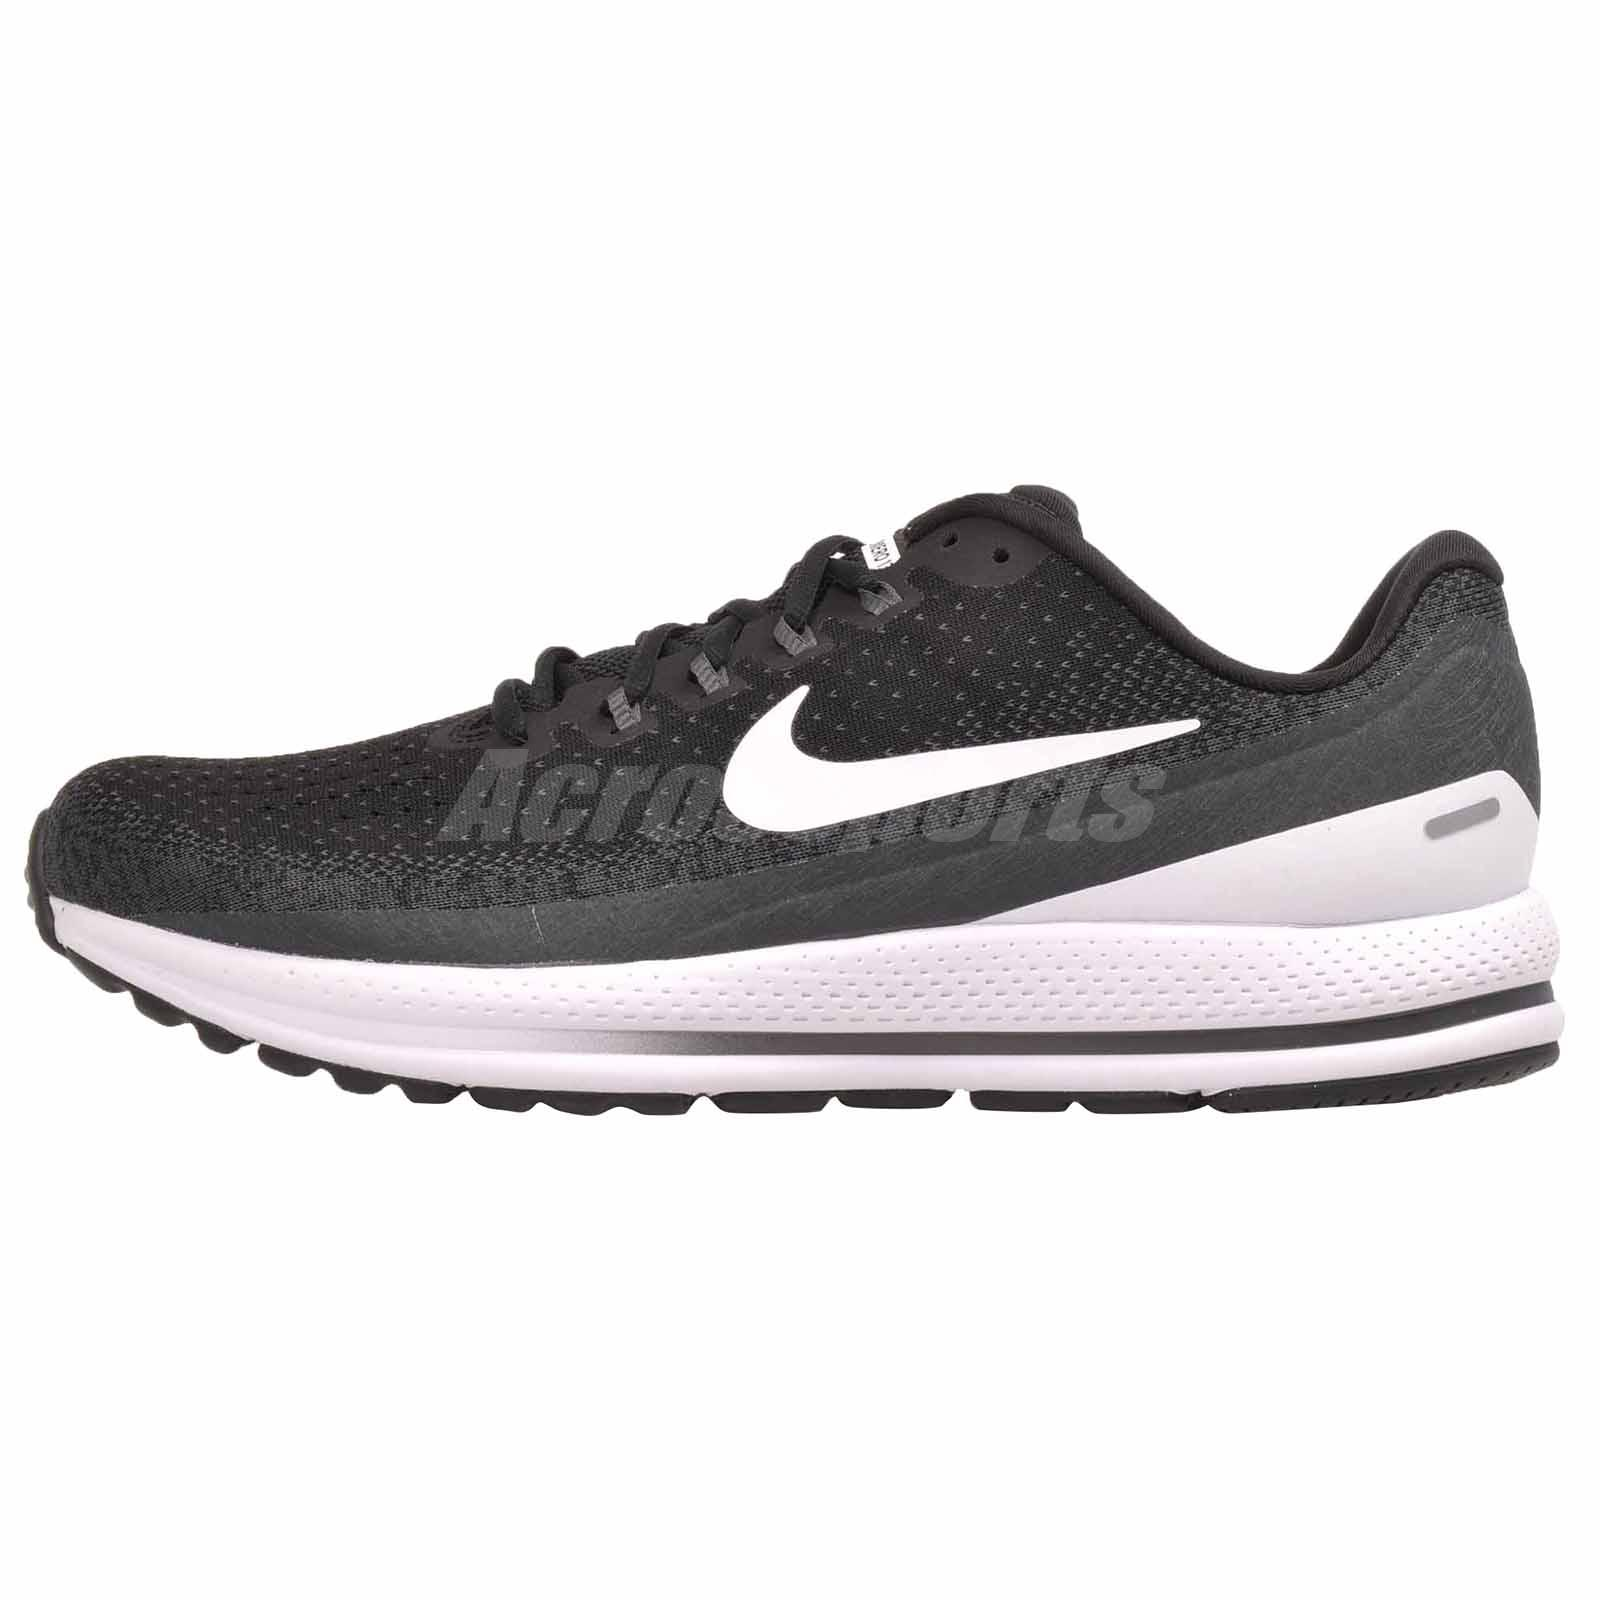 b935fe77422 Details about Nike Air Zoom Vomero 13 (4E) Running Mens Shoes Wide Black  White 942846-001